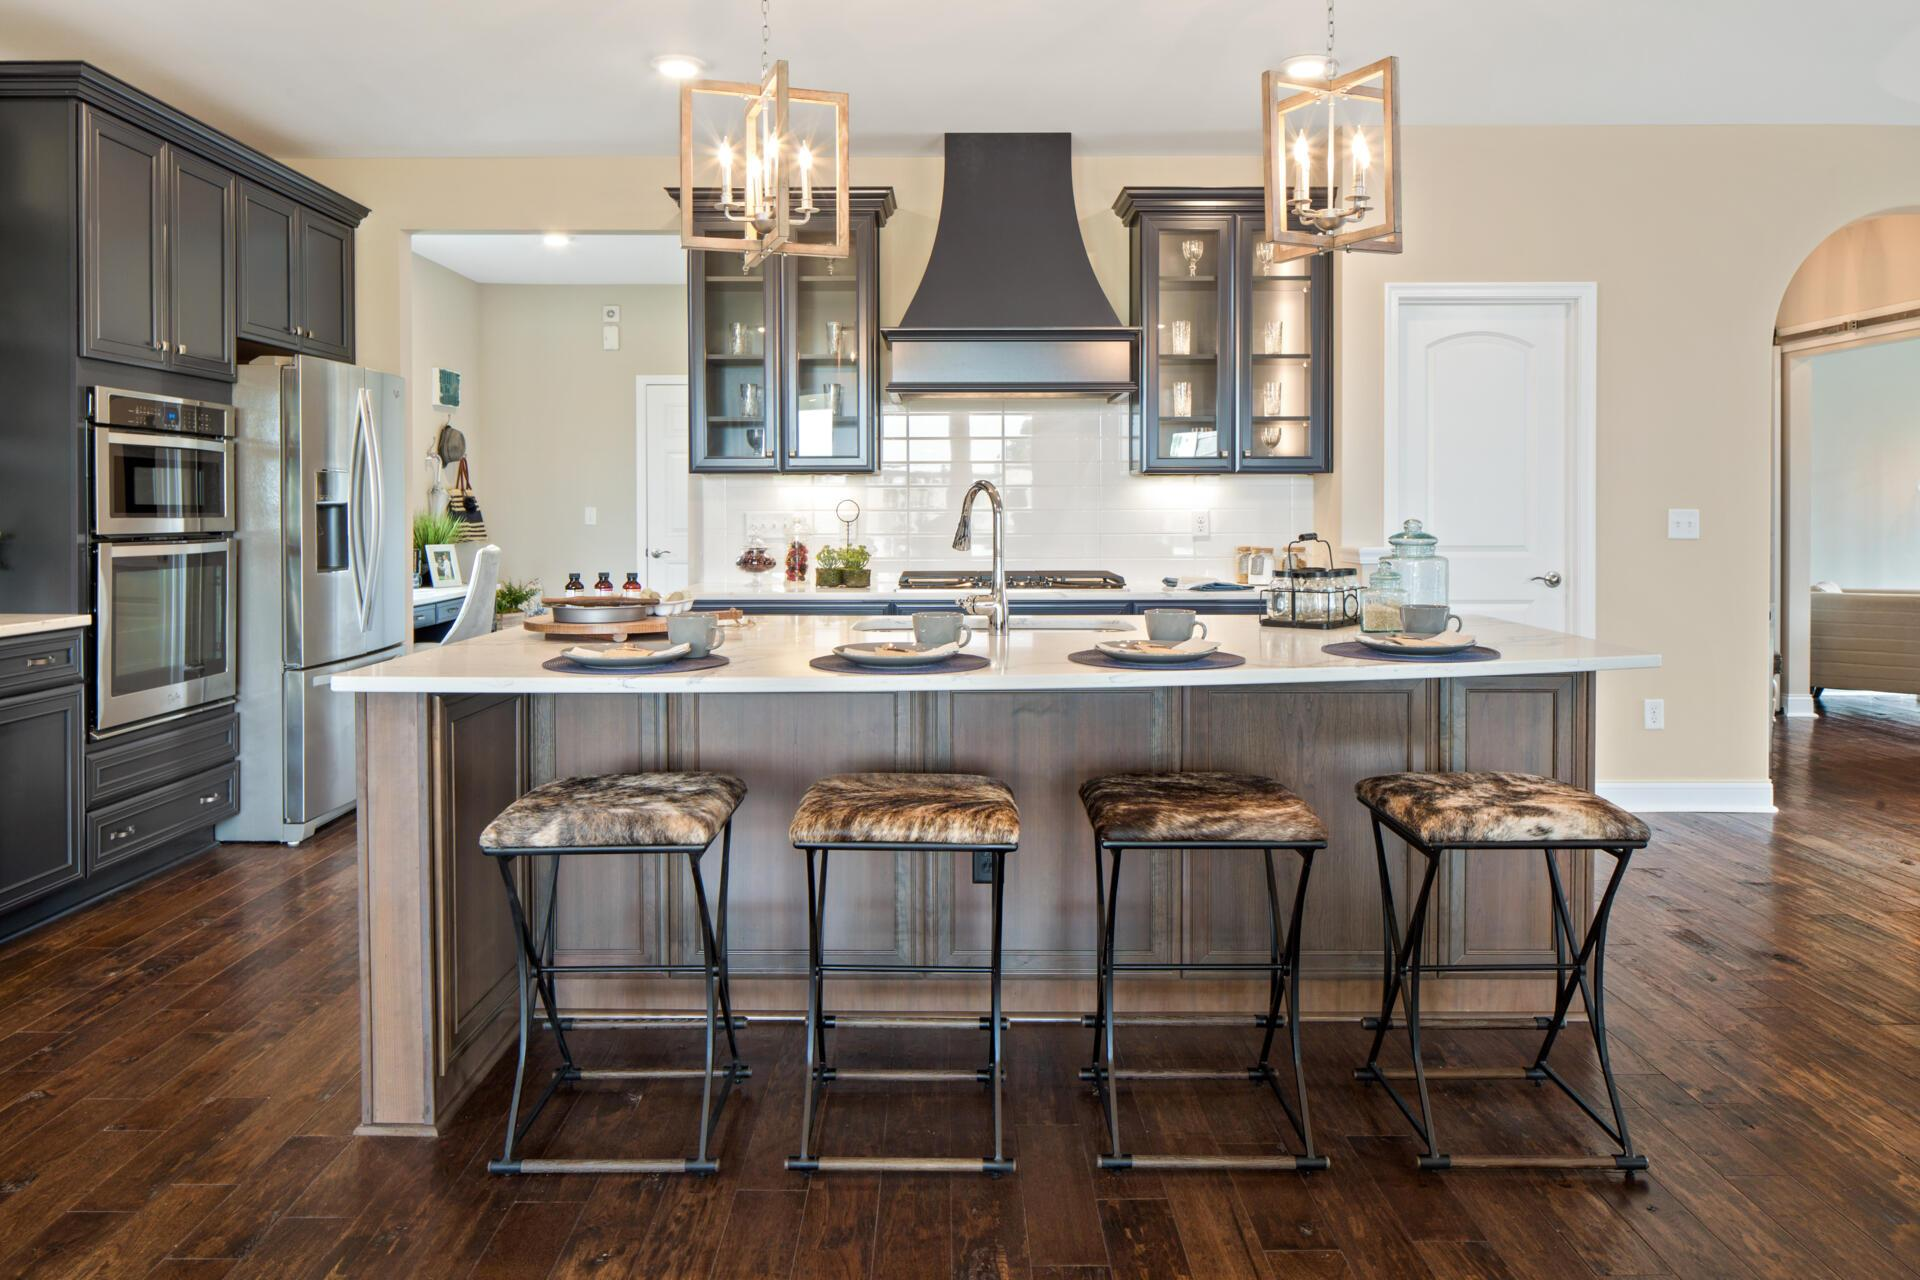 Kitchen featured in the Clearwater By Drees Homes in Indianapolis, IN